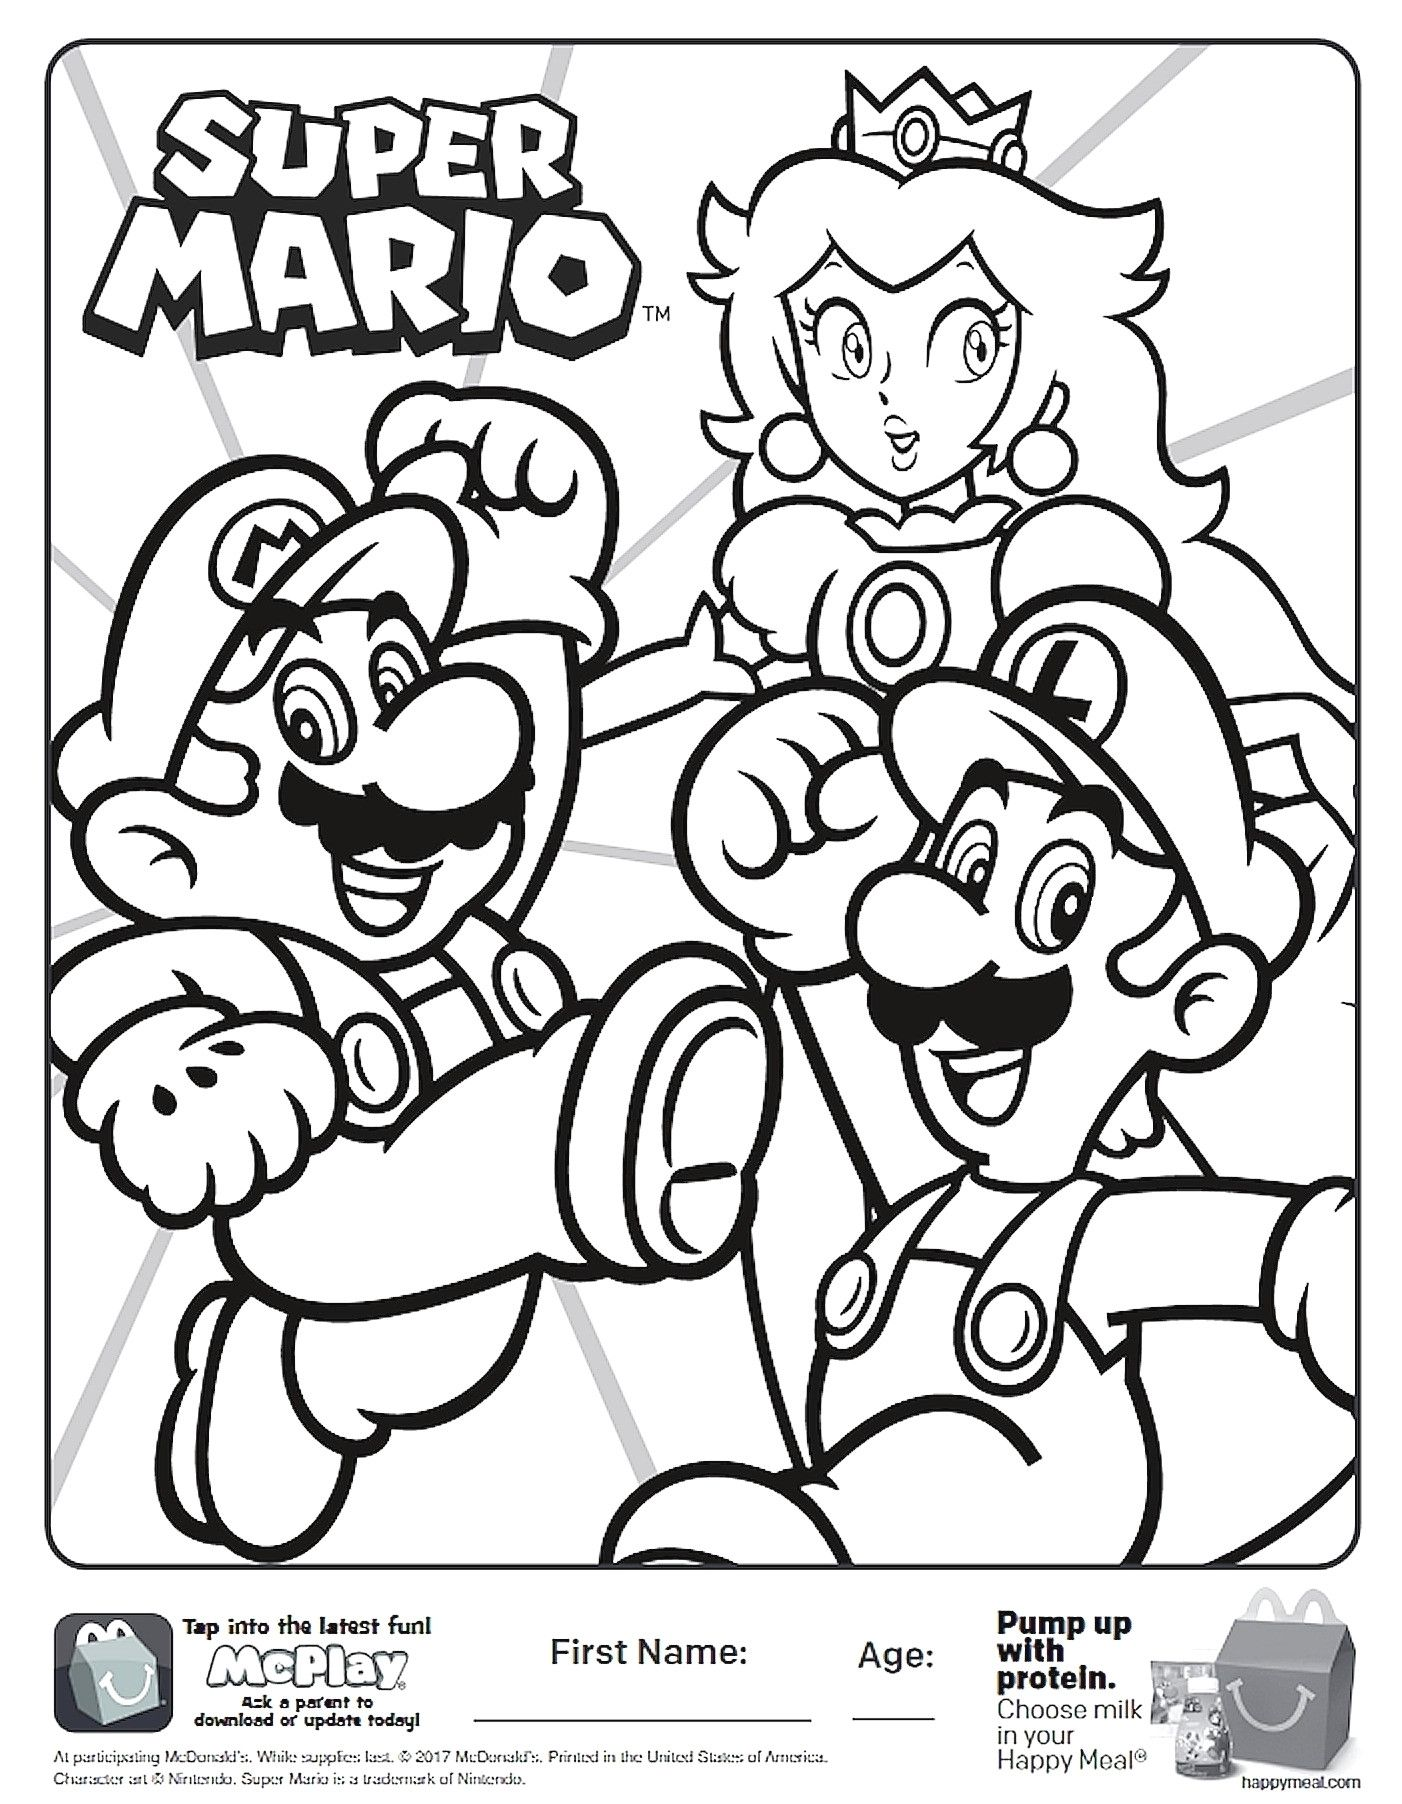 Mario Bros Coloring Mario Bros Coloring Mario Bros Coloring Book Mario Bros Coloring Super Mario Coloring Pages Mario Coloring Pages Avengers Coloring Pages